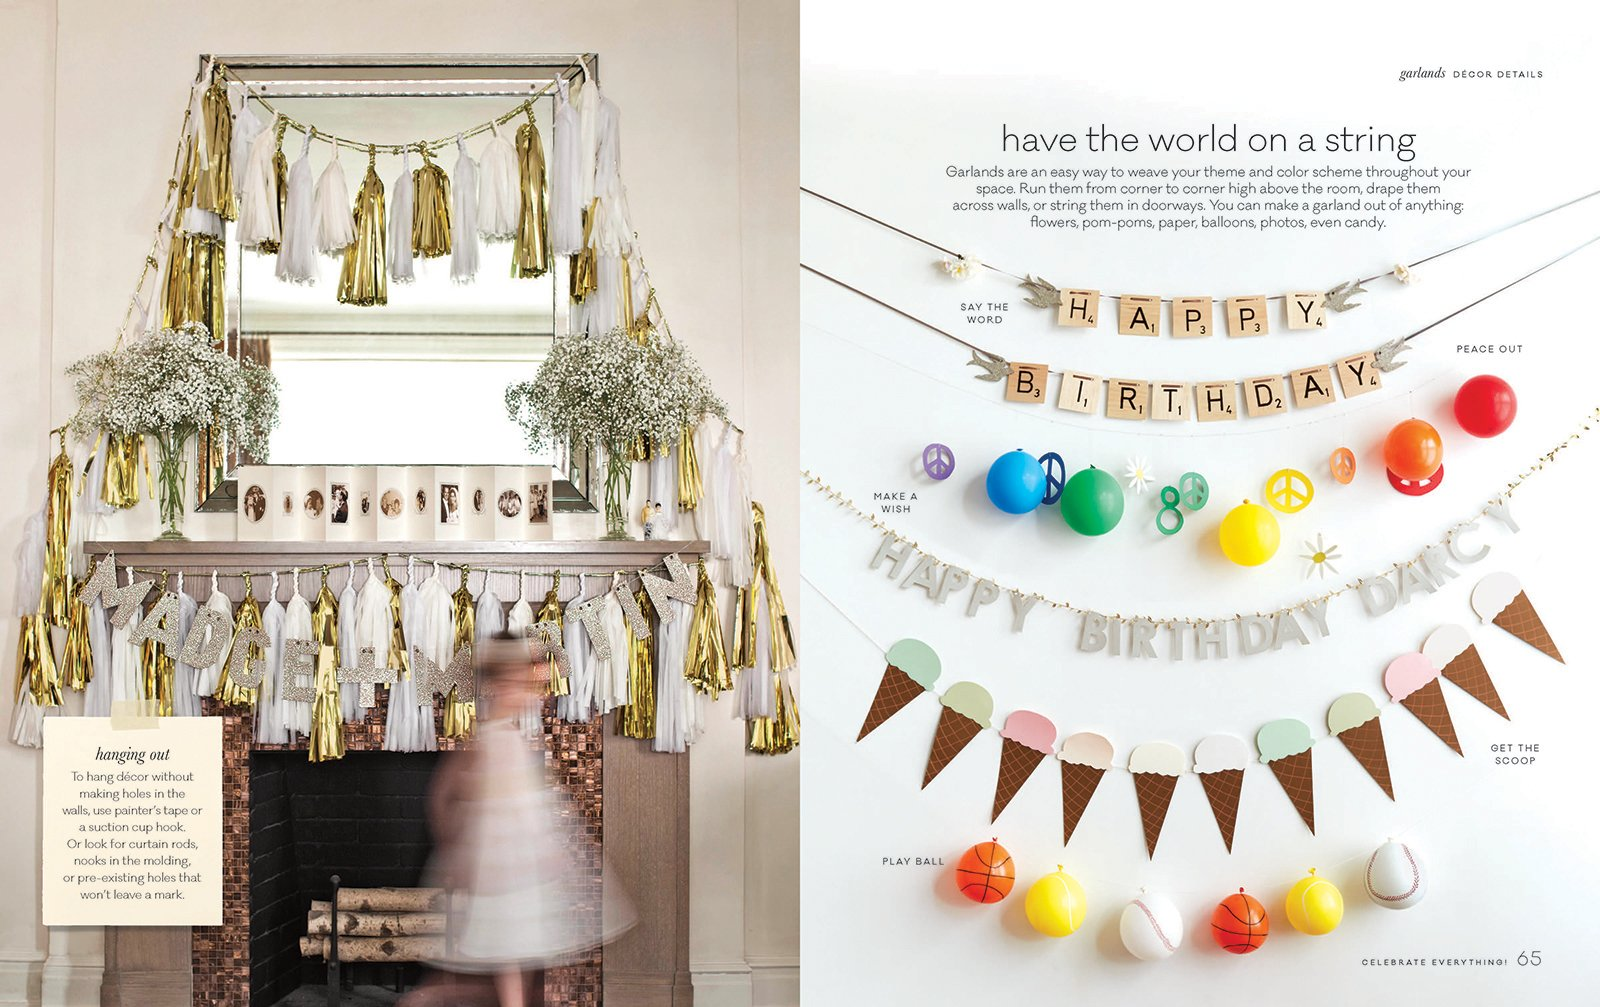 celebrate everything!: fun ideas to bring your parties to life